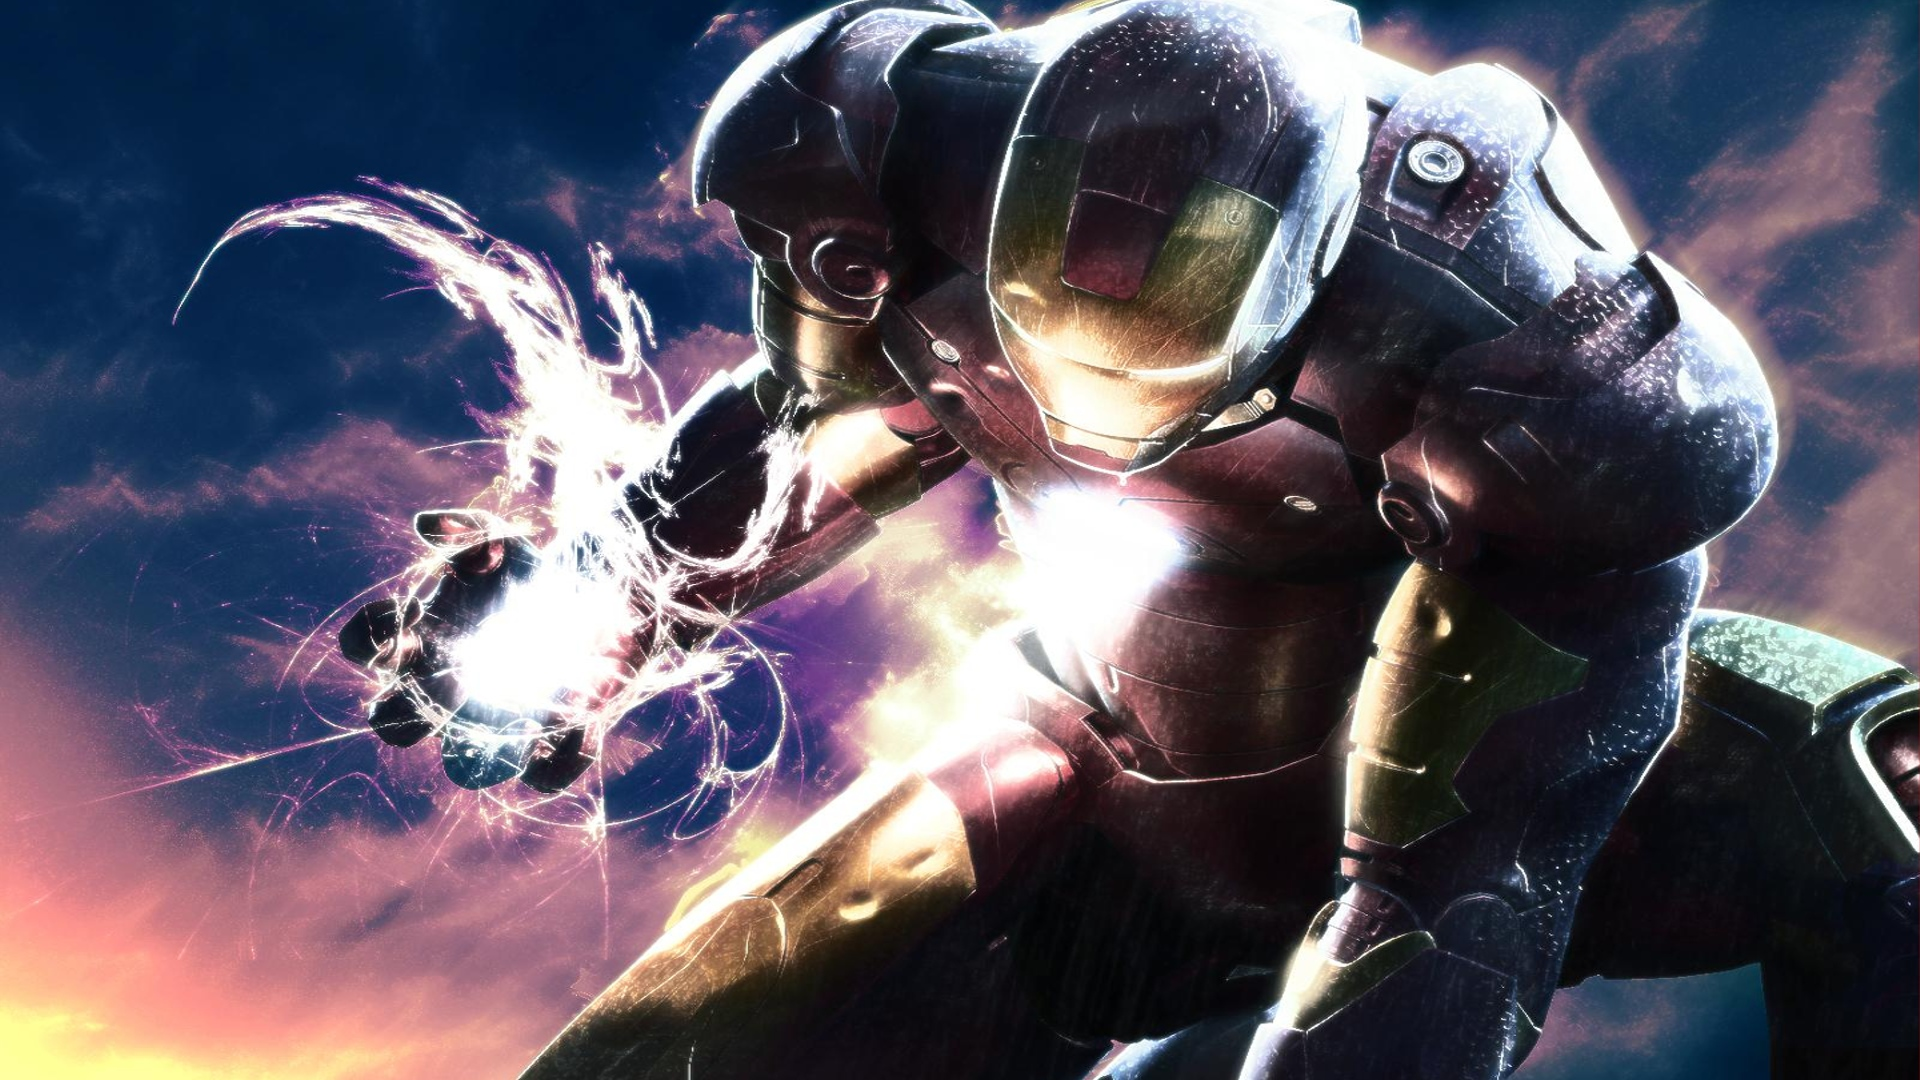 Iron Man HD Wallpaper 1920x1080